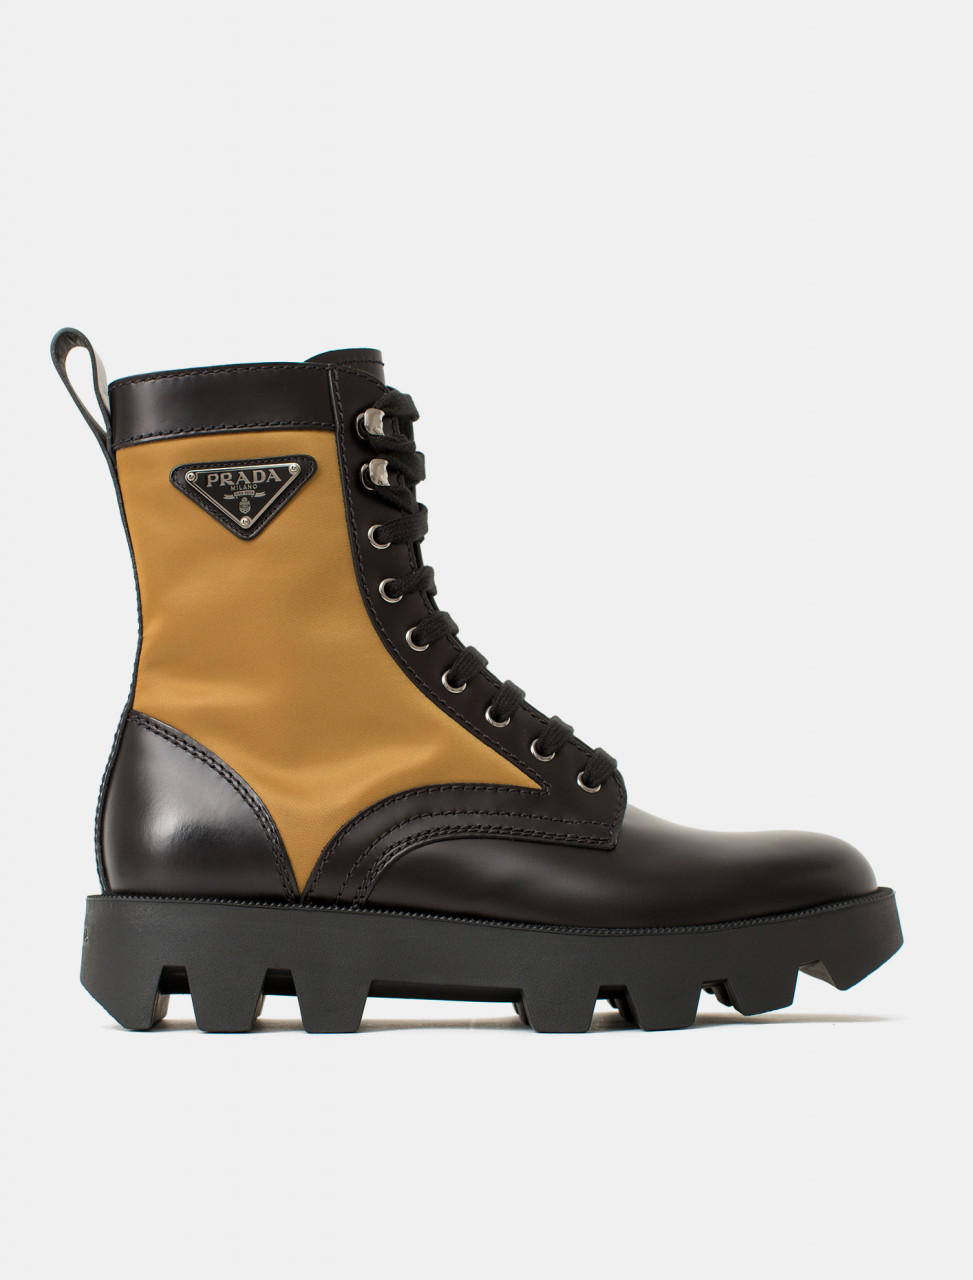 Prada Brushed Leather and Nylon Boot